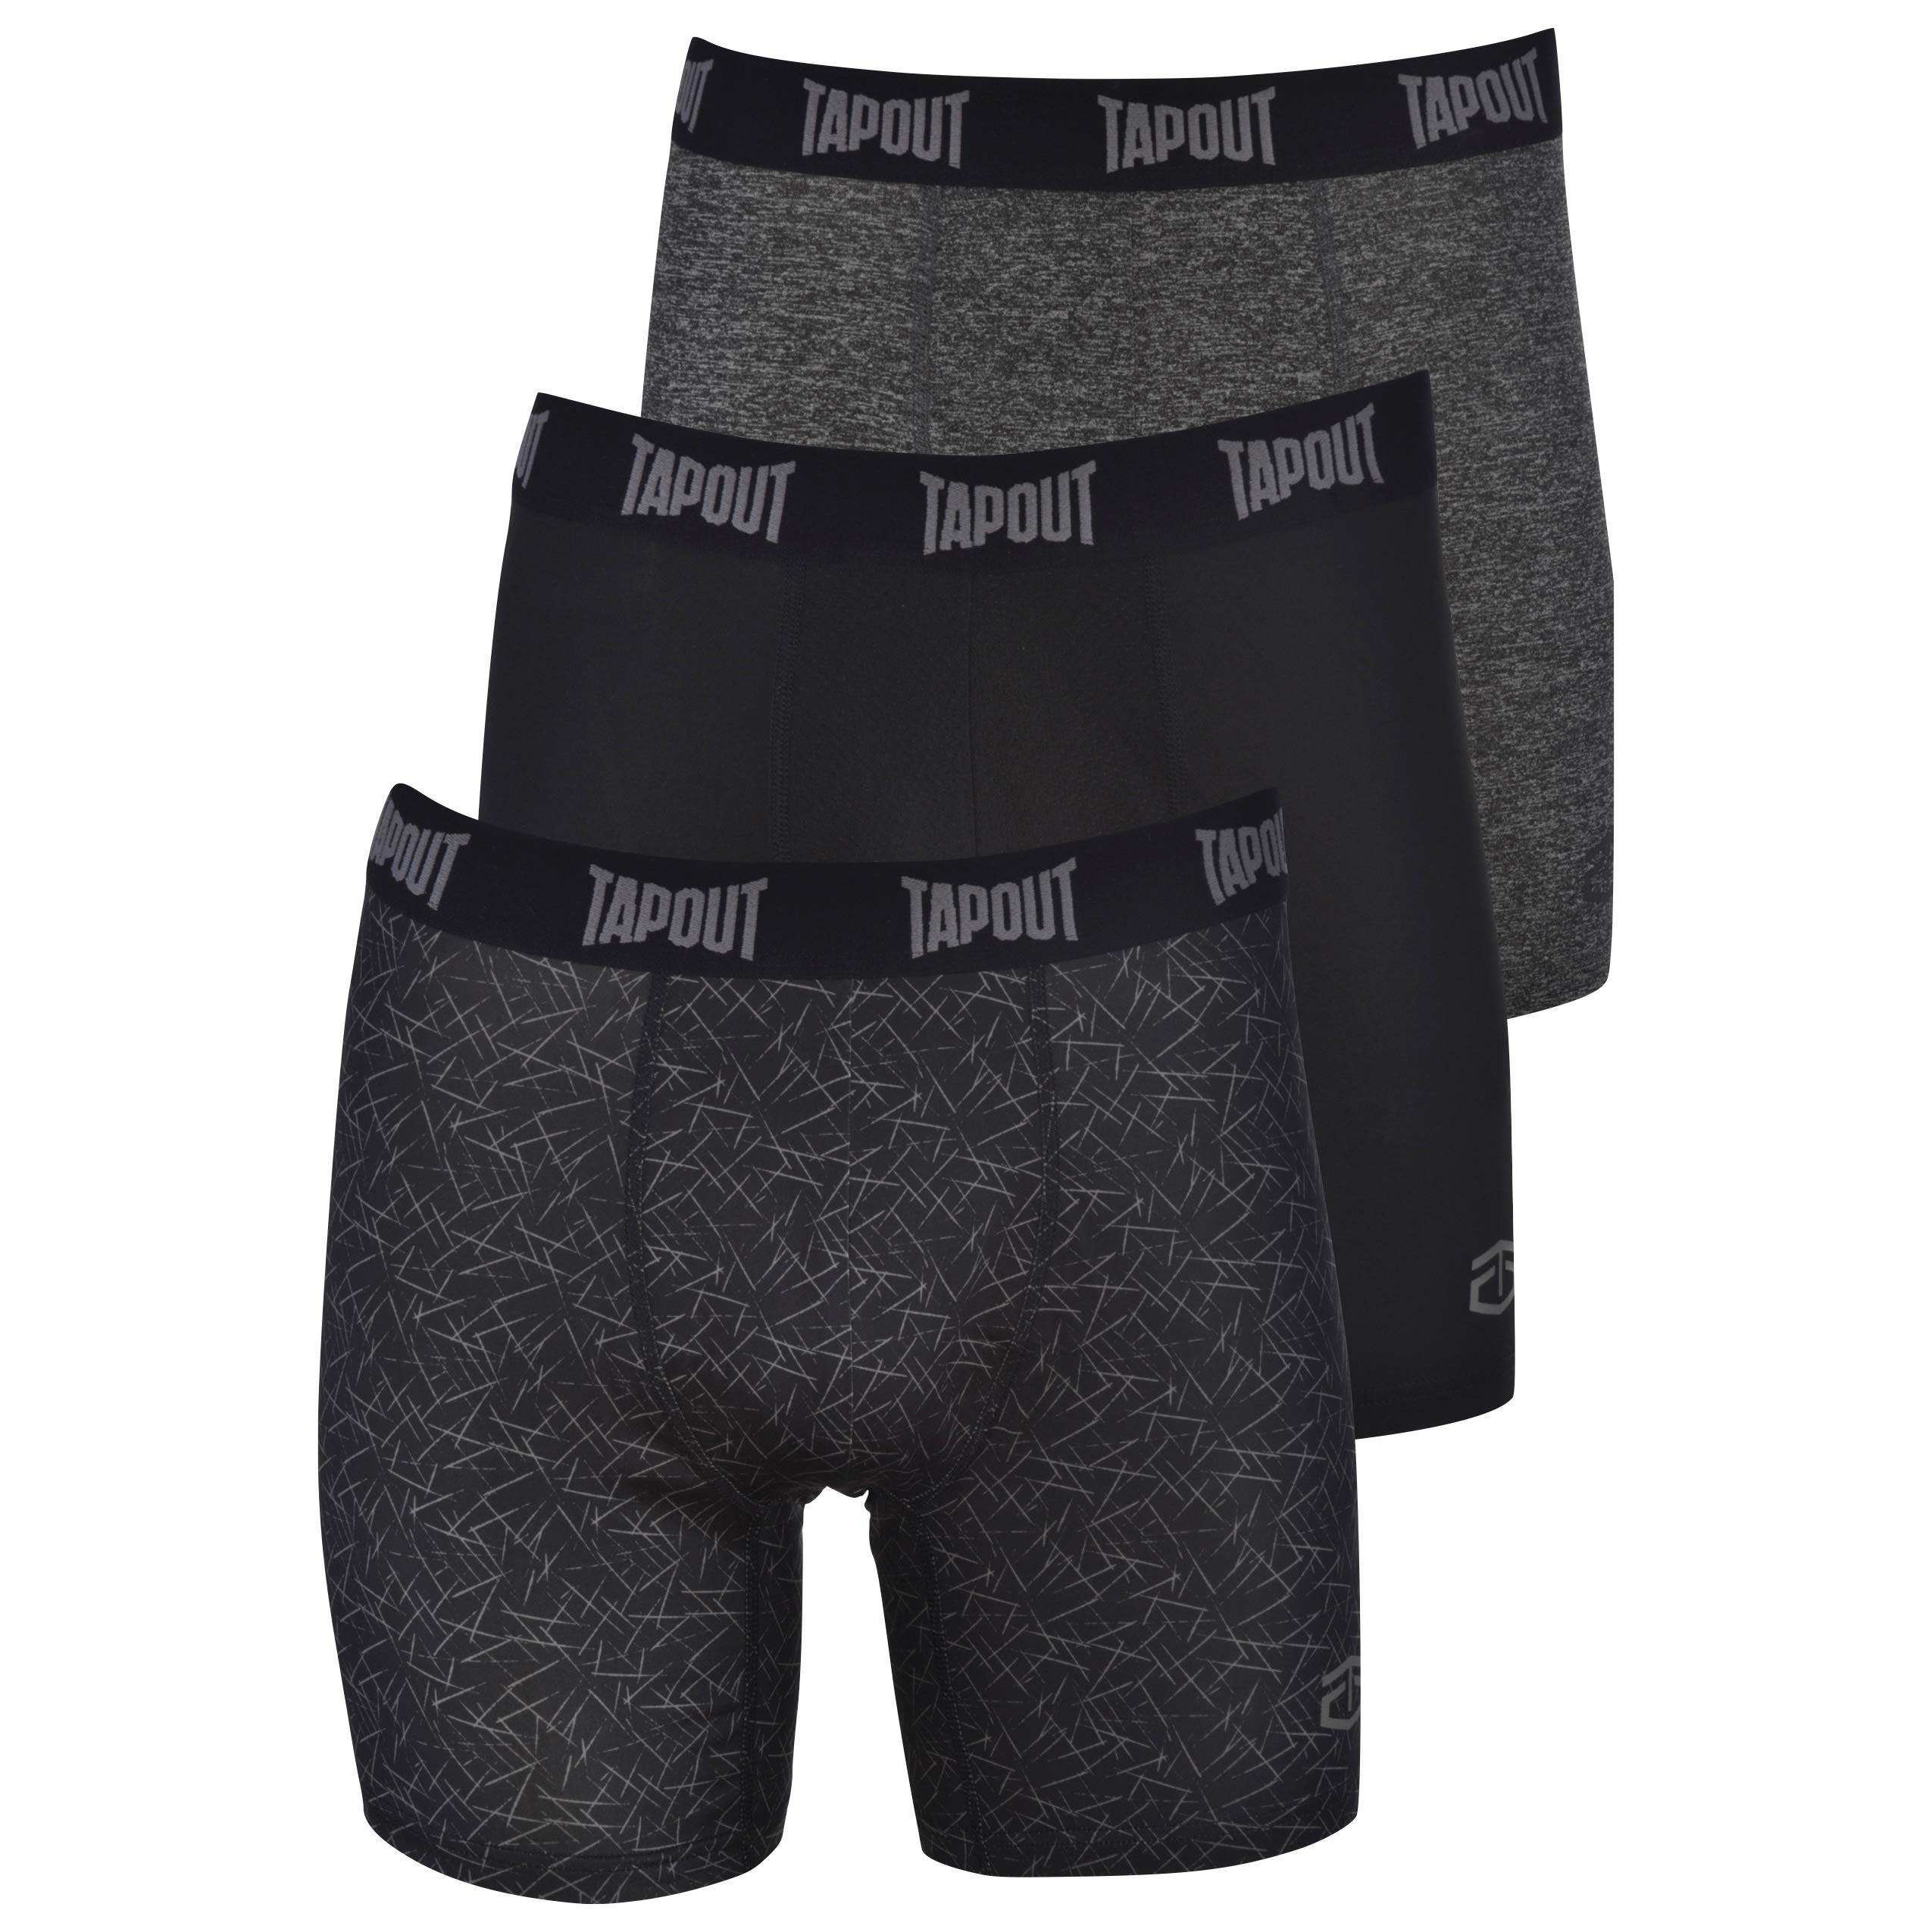 TapouT Mens Performance Boxer Briefs - 3-Pack Stretch Performance Training Underwear Breathable Athletic Fit No Fly by TapouT